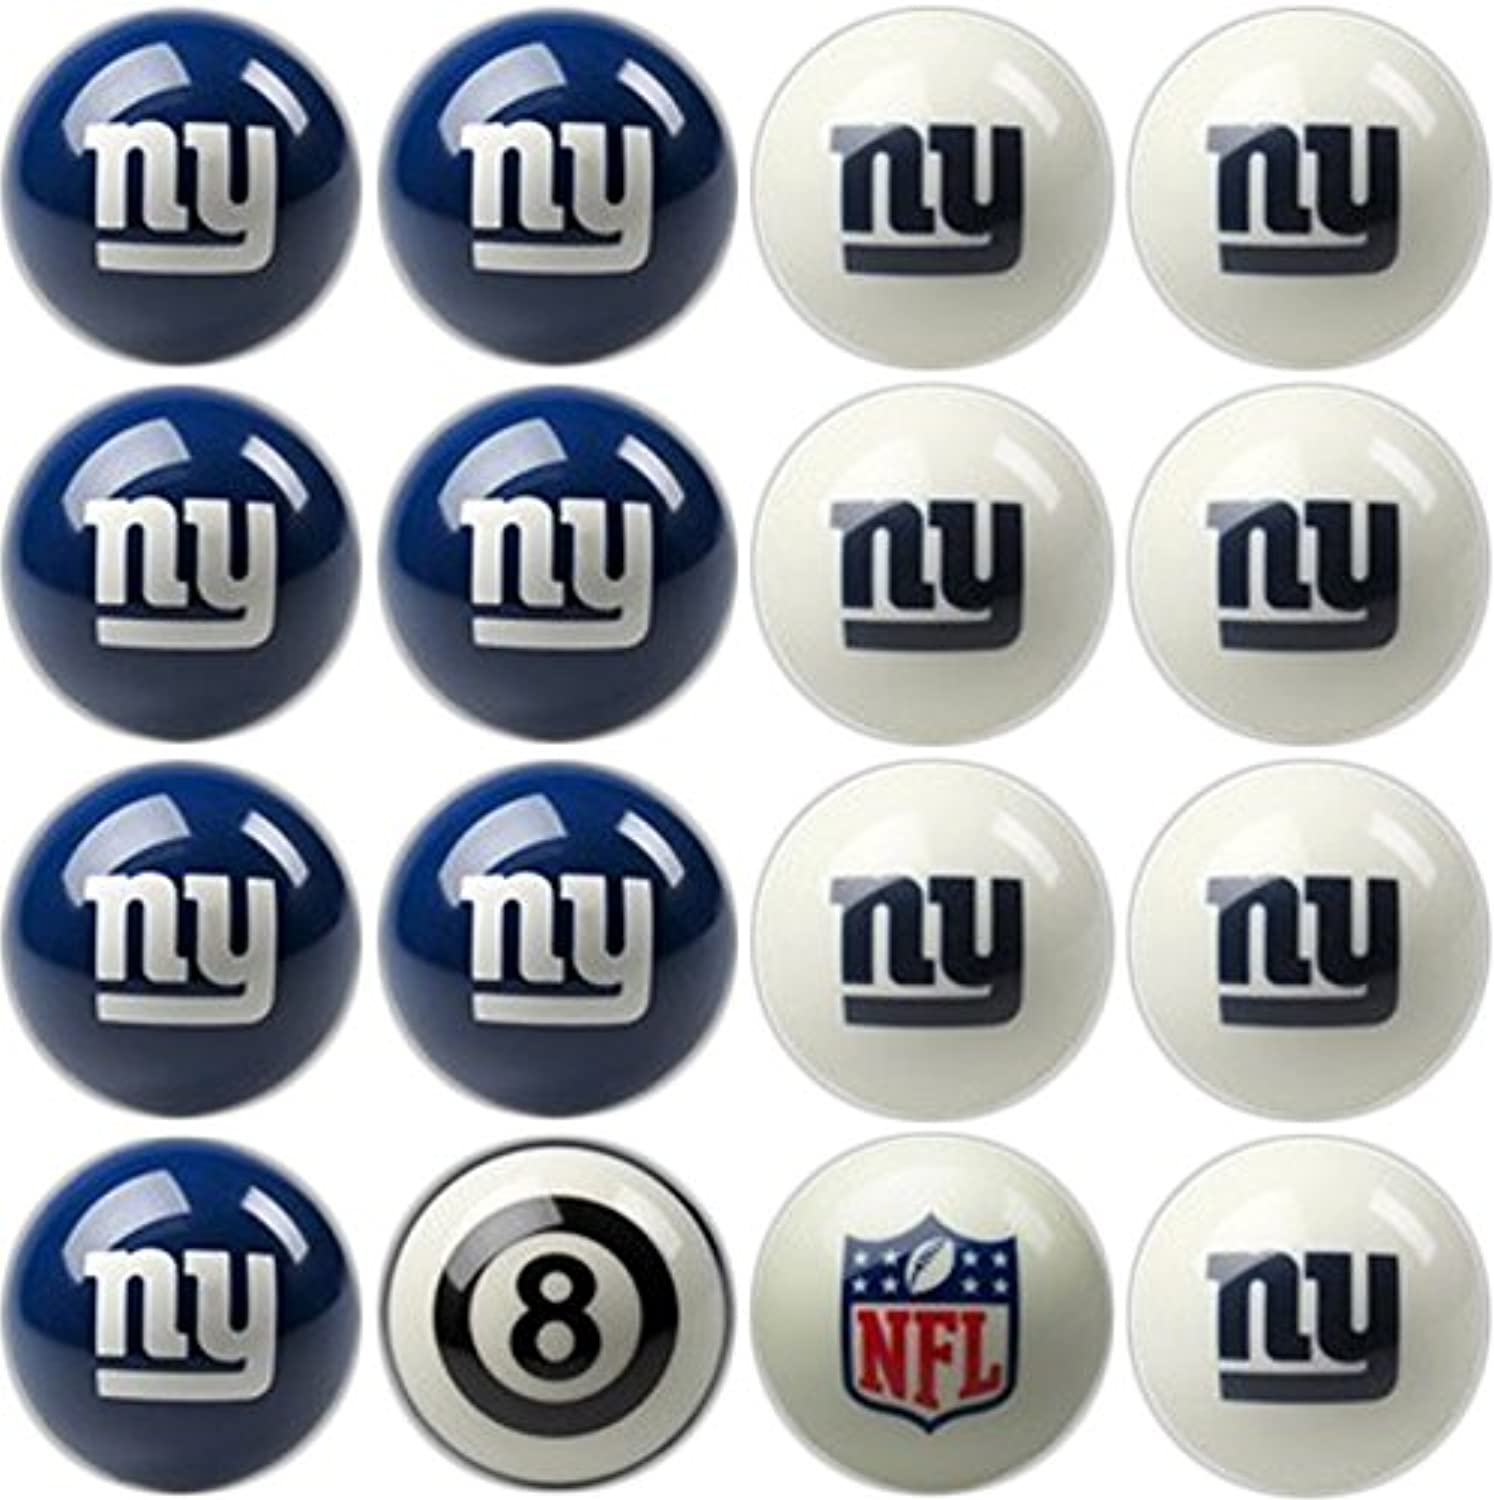 Imperial Officially Licensed NFL Merchandise  Home vs. Away Billiard Pool Balls, Complete 16 Ball Set, New York Giants